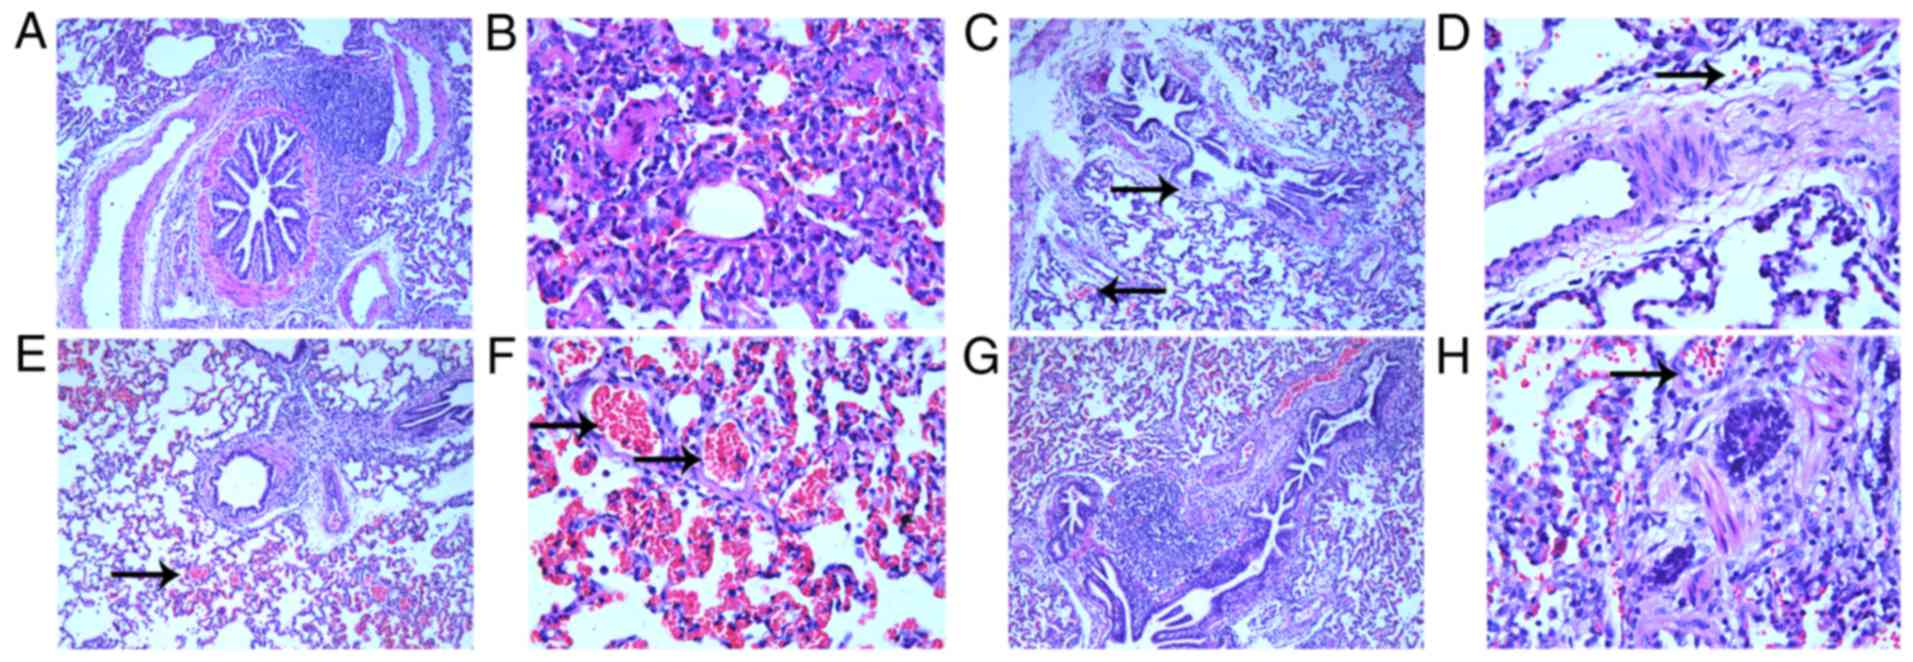 Histological Analysis Of Pulmonary Damage In The Following Experimental Animal Groups Control A Magnification X100 And B X400 Acute